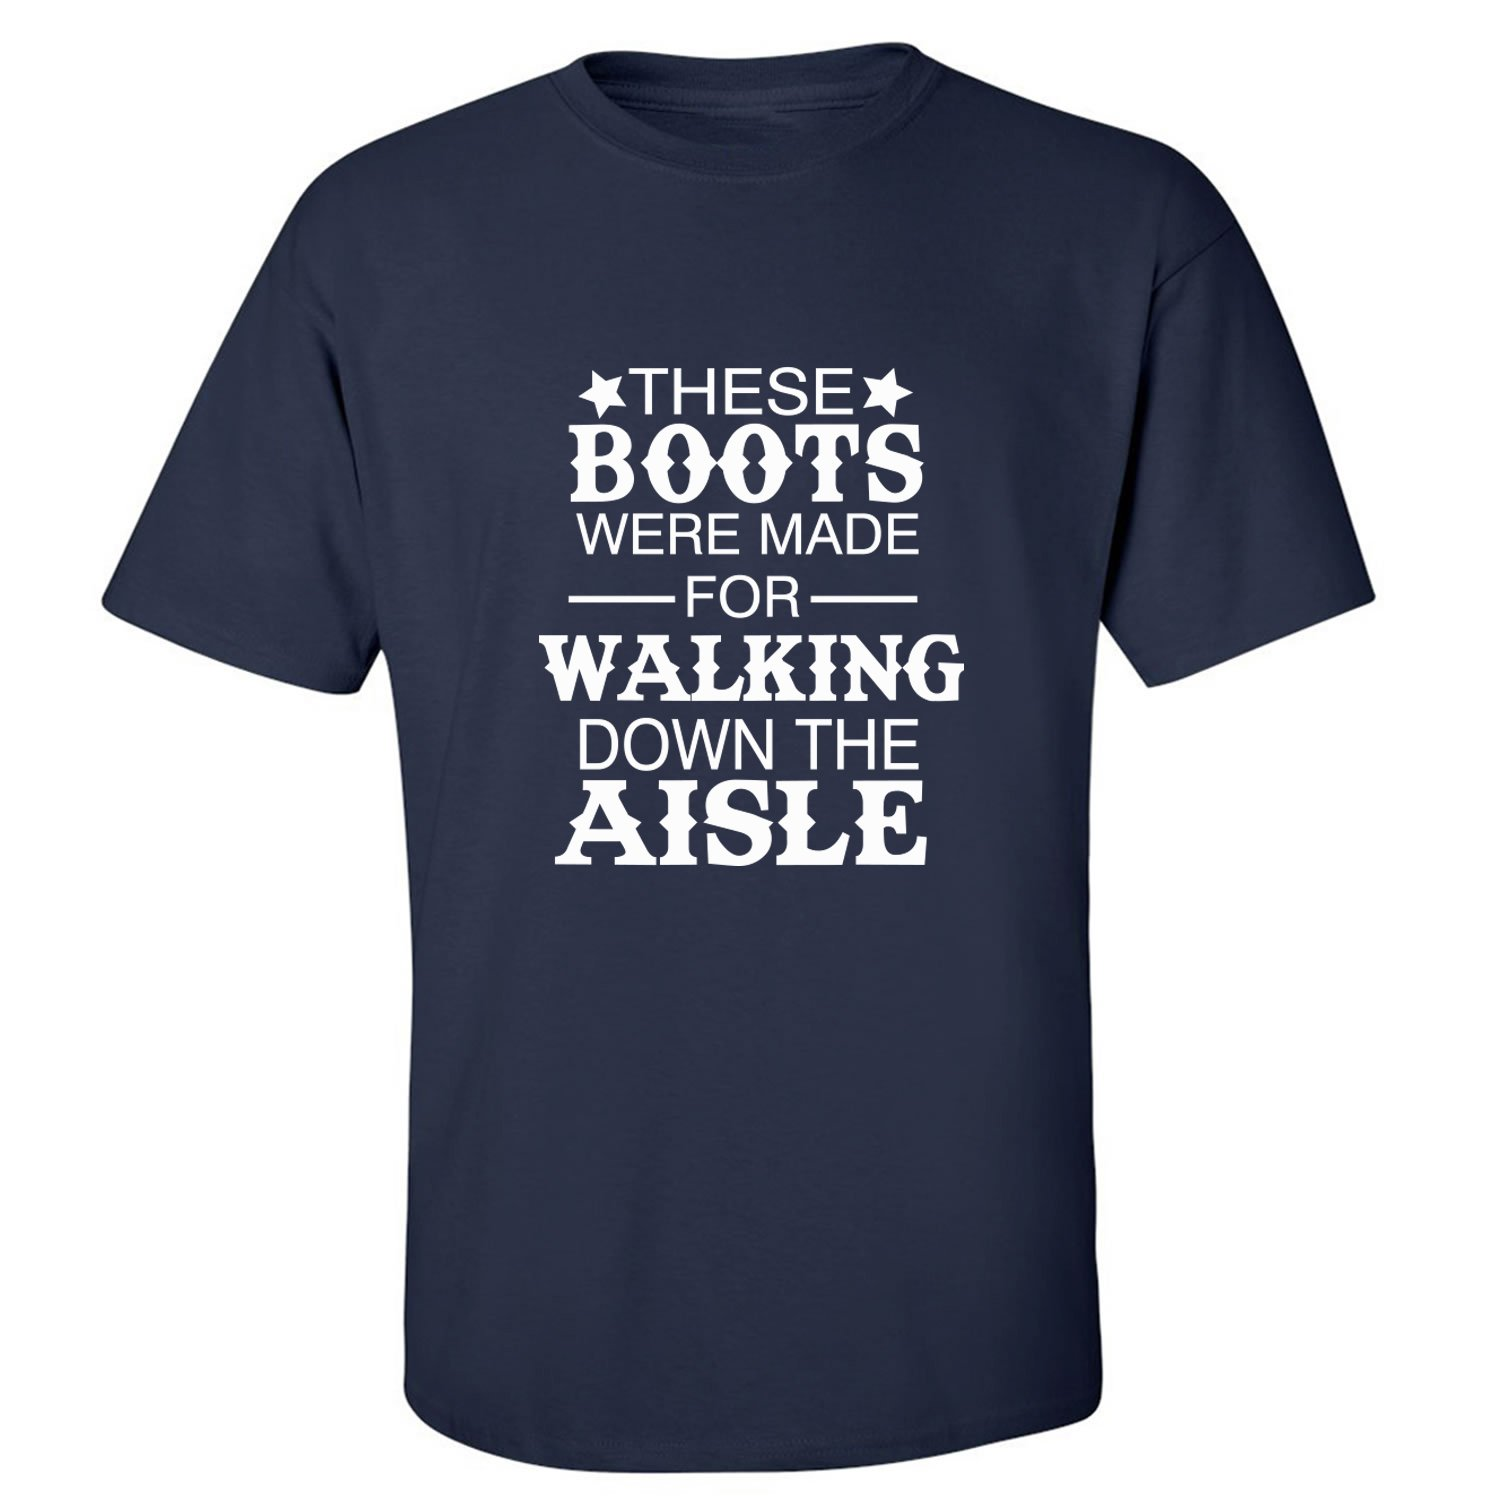 Theses Boots Were Made for Walking Down The Aisle Adult T-Shirt in Navy - X-Large